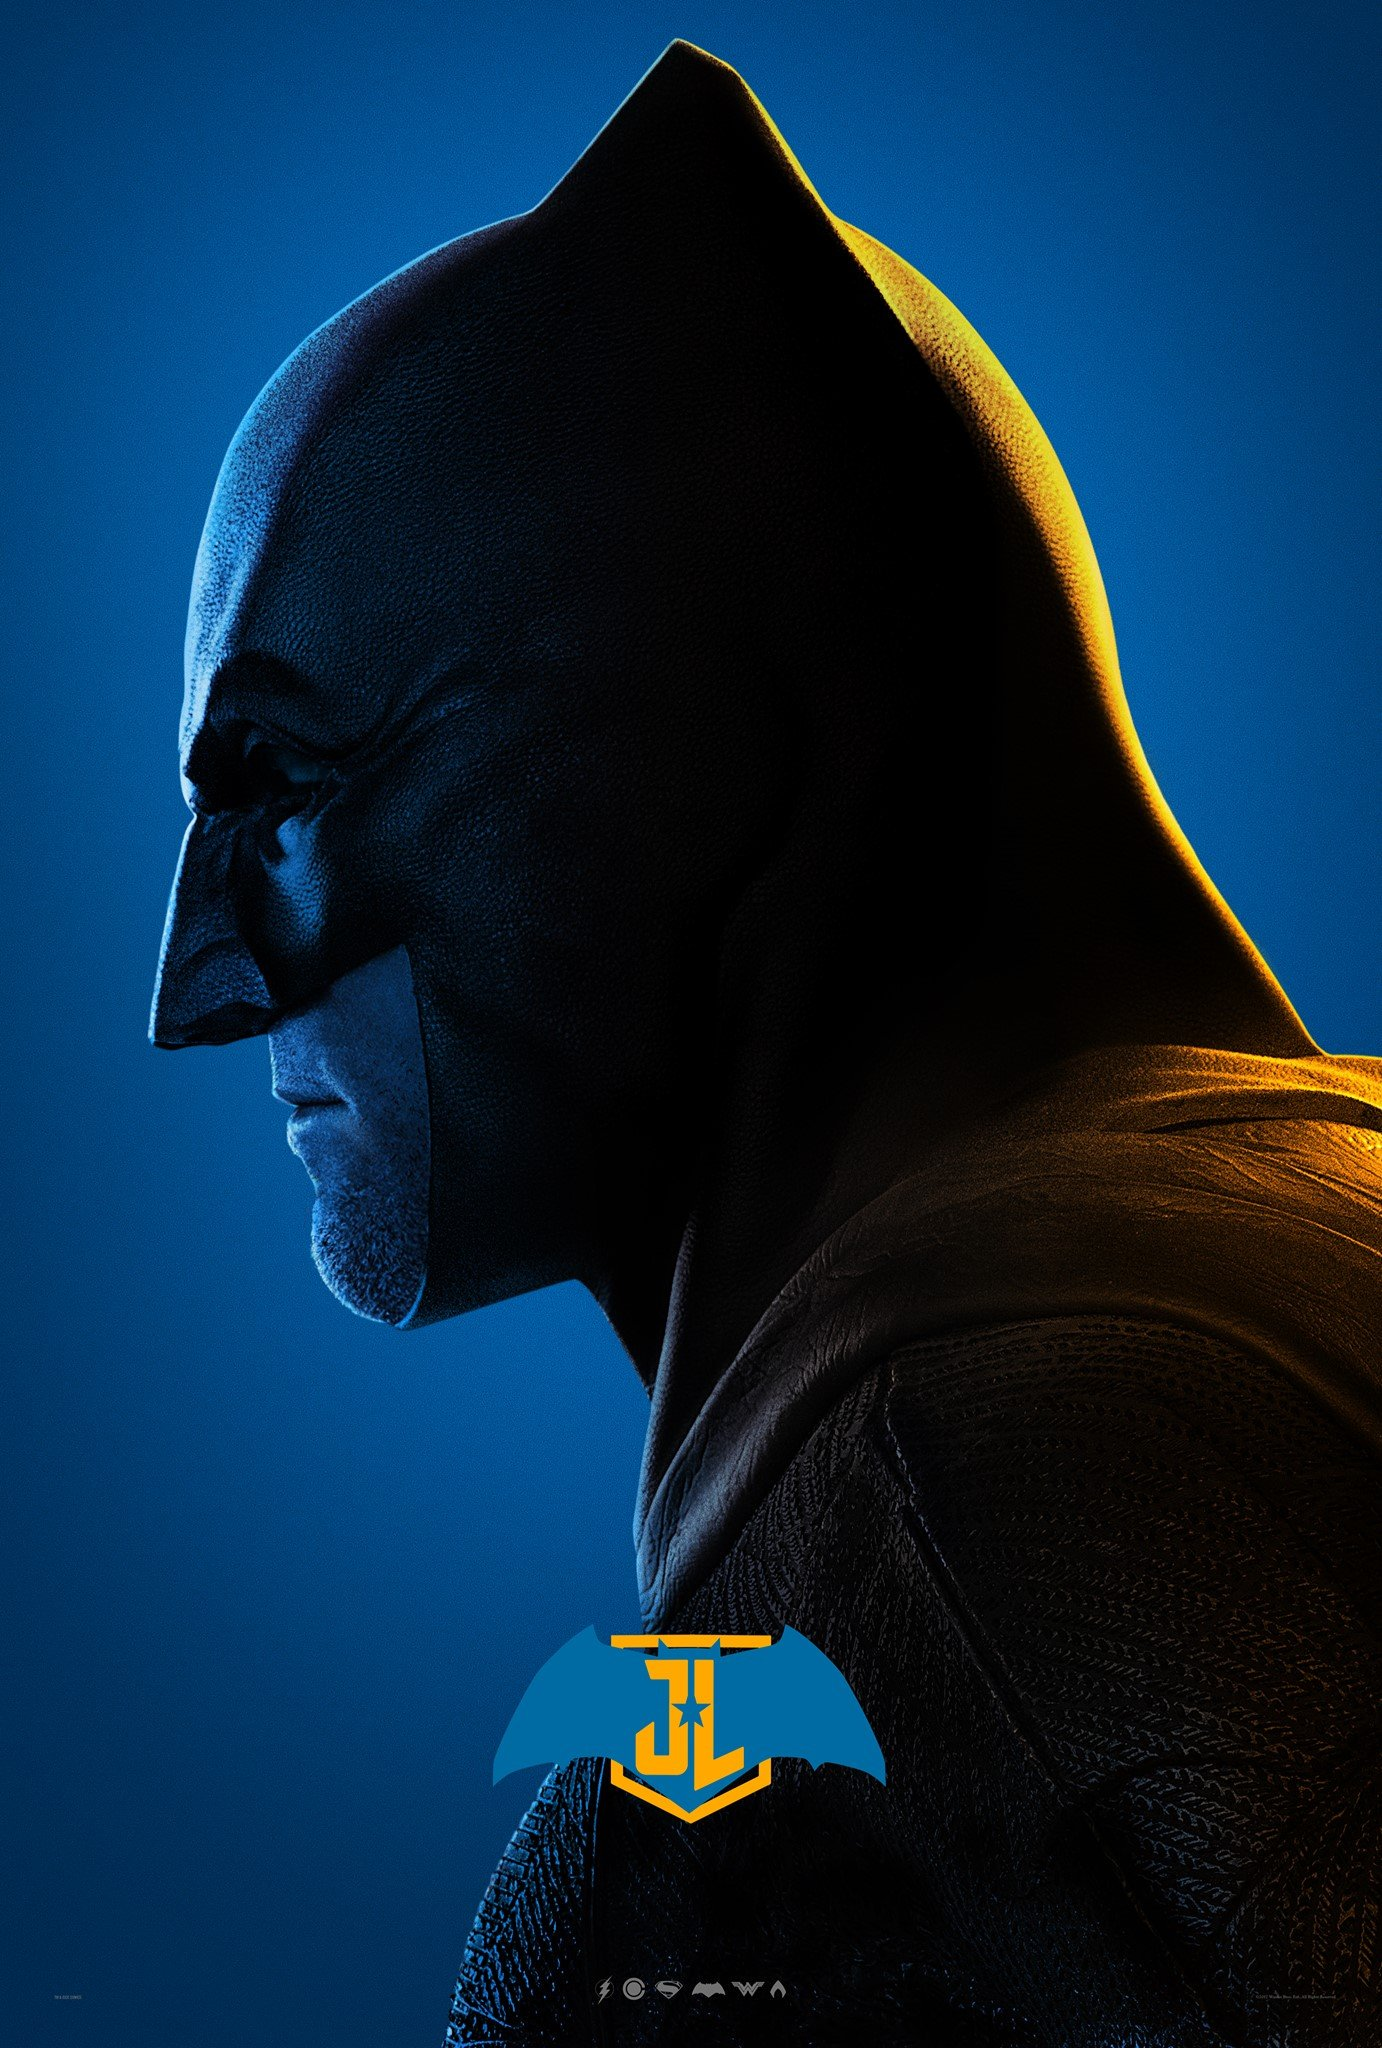 Justice league character posters batman